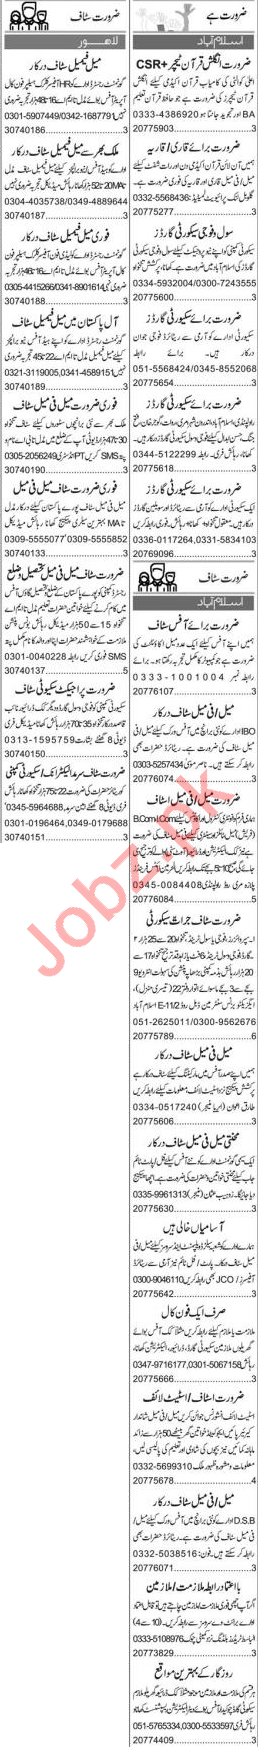 Web Developer & Quran Teacher Jobs 2020 in Islamabad